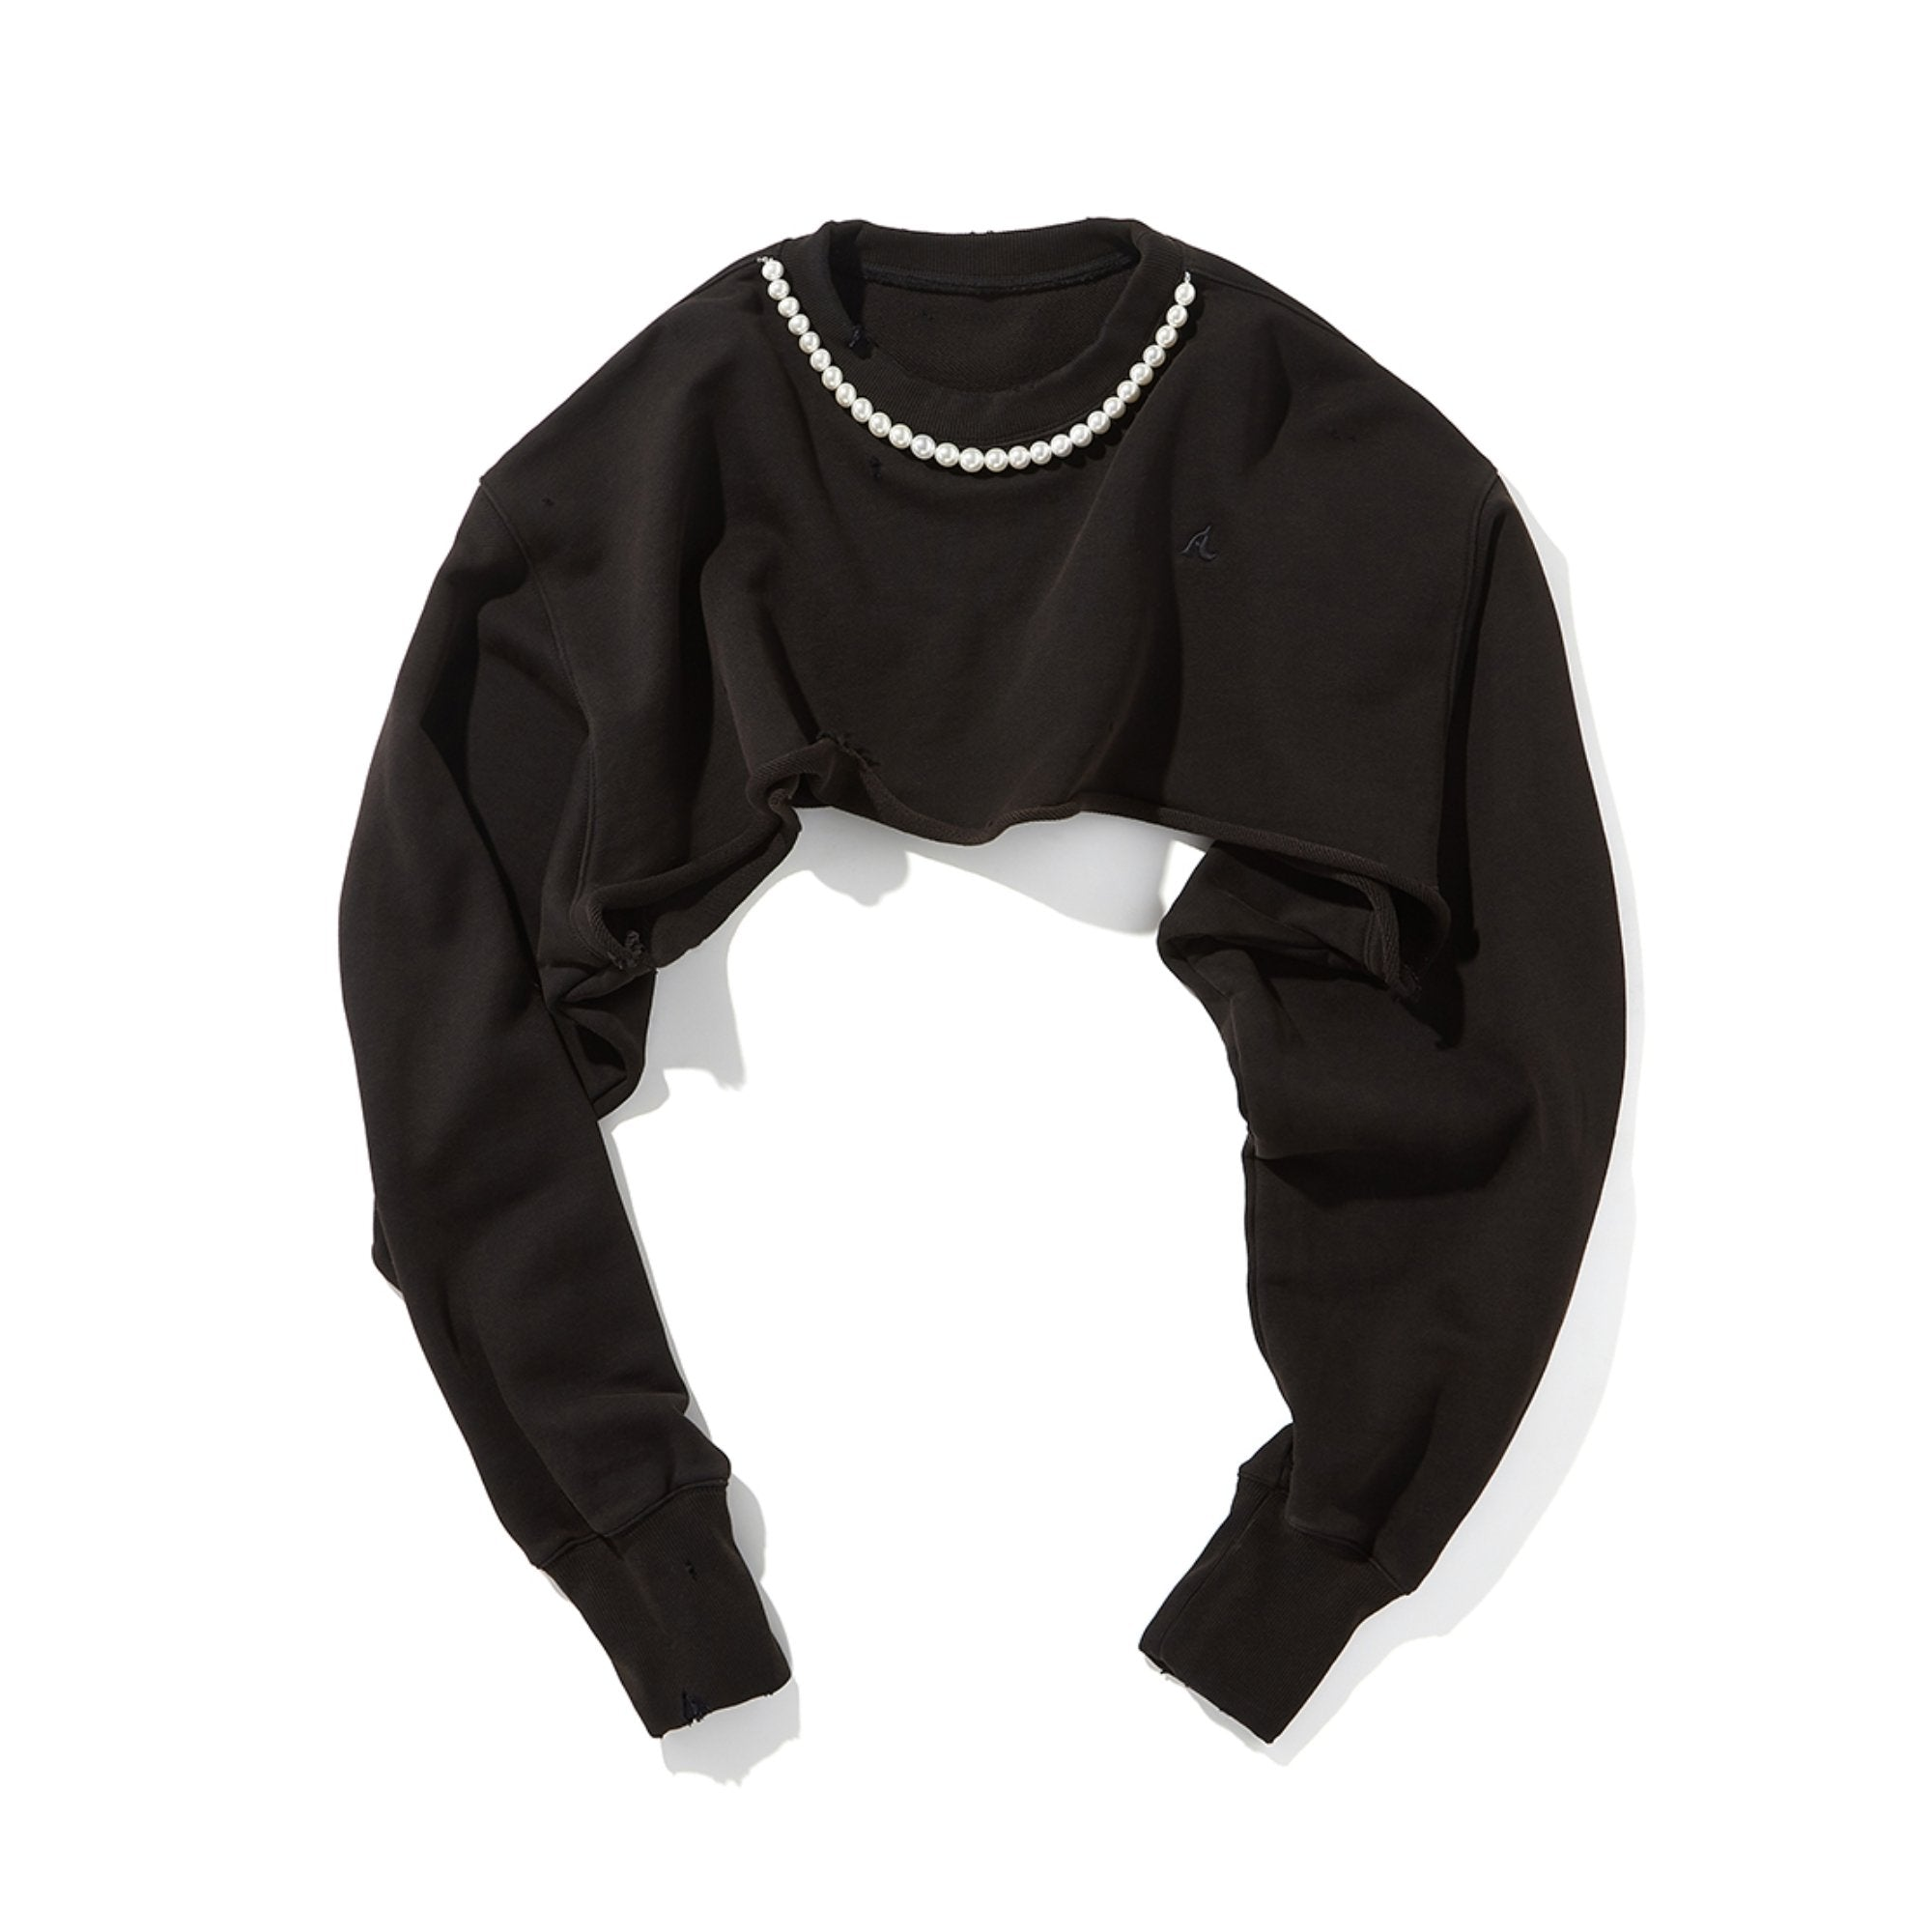 AIN'T SHY Pearl Necklace Crewneck Ore Black | MADA IN CHINA